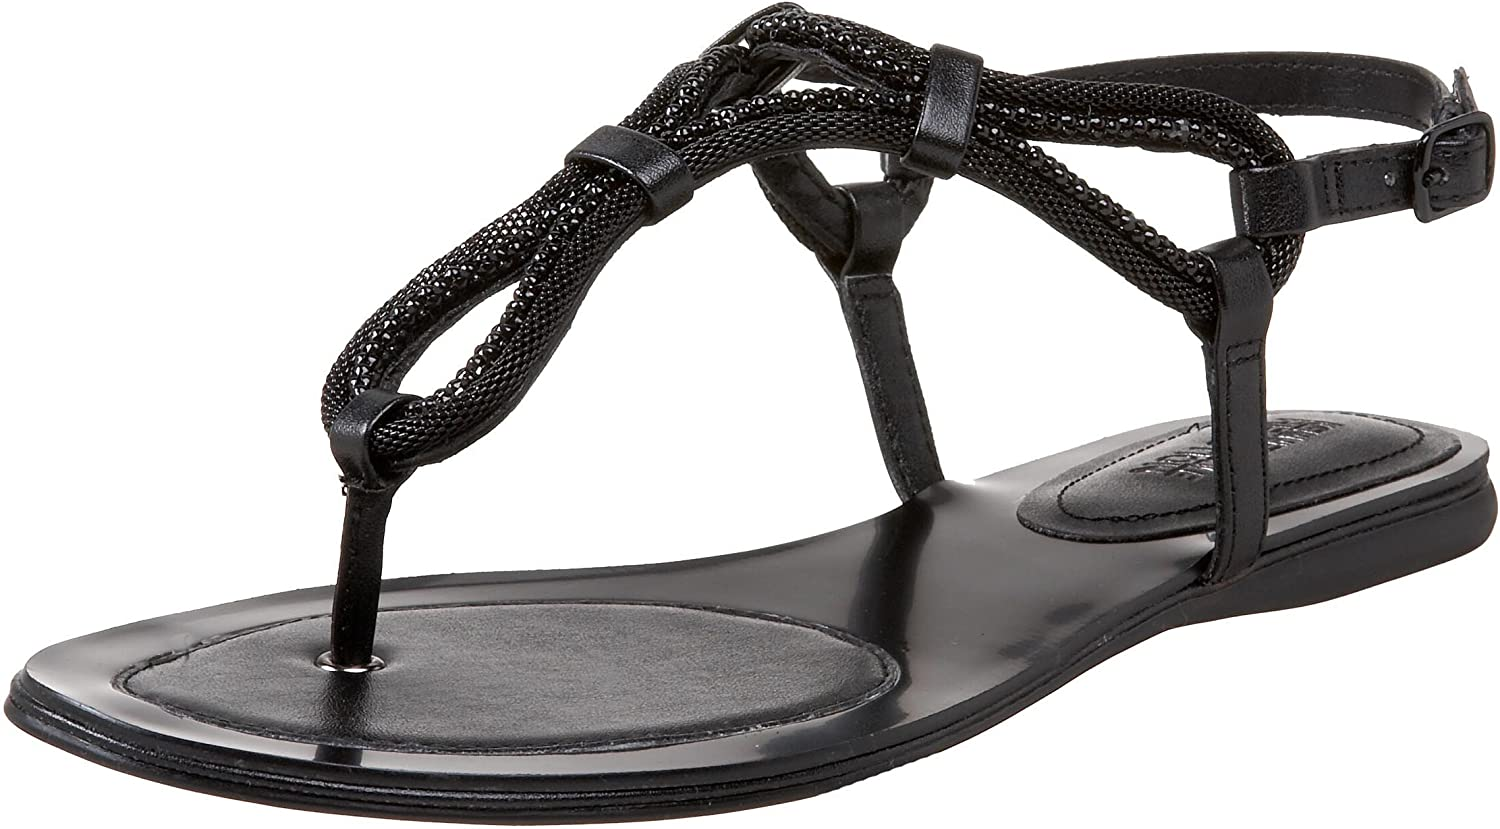 Kenneth Cole REACTION Women's Shes Thong Gem Flat Sandal Outlet sale feature A Store